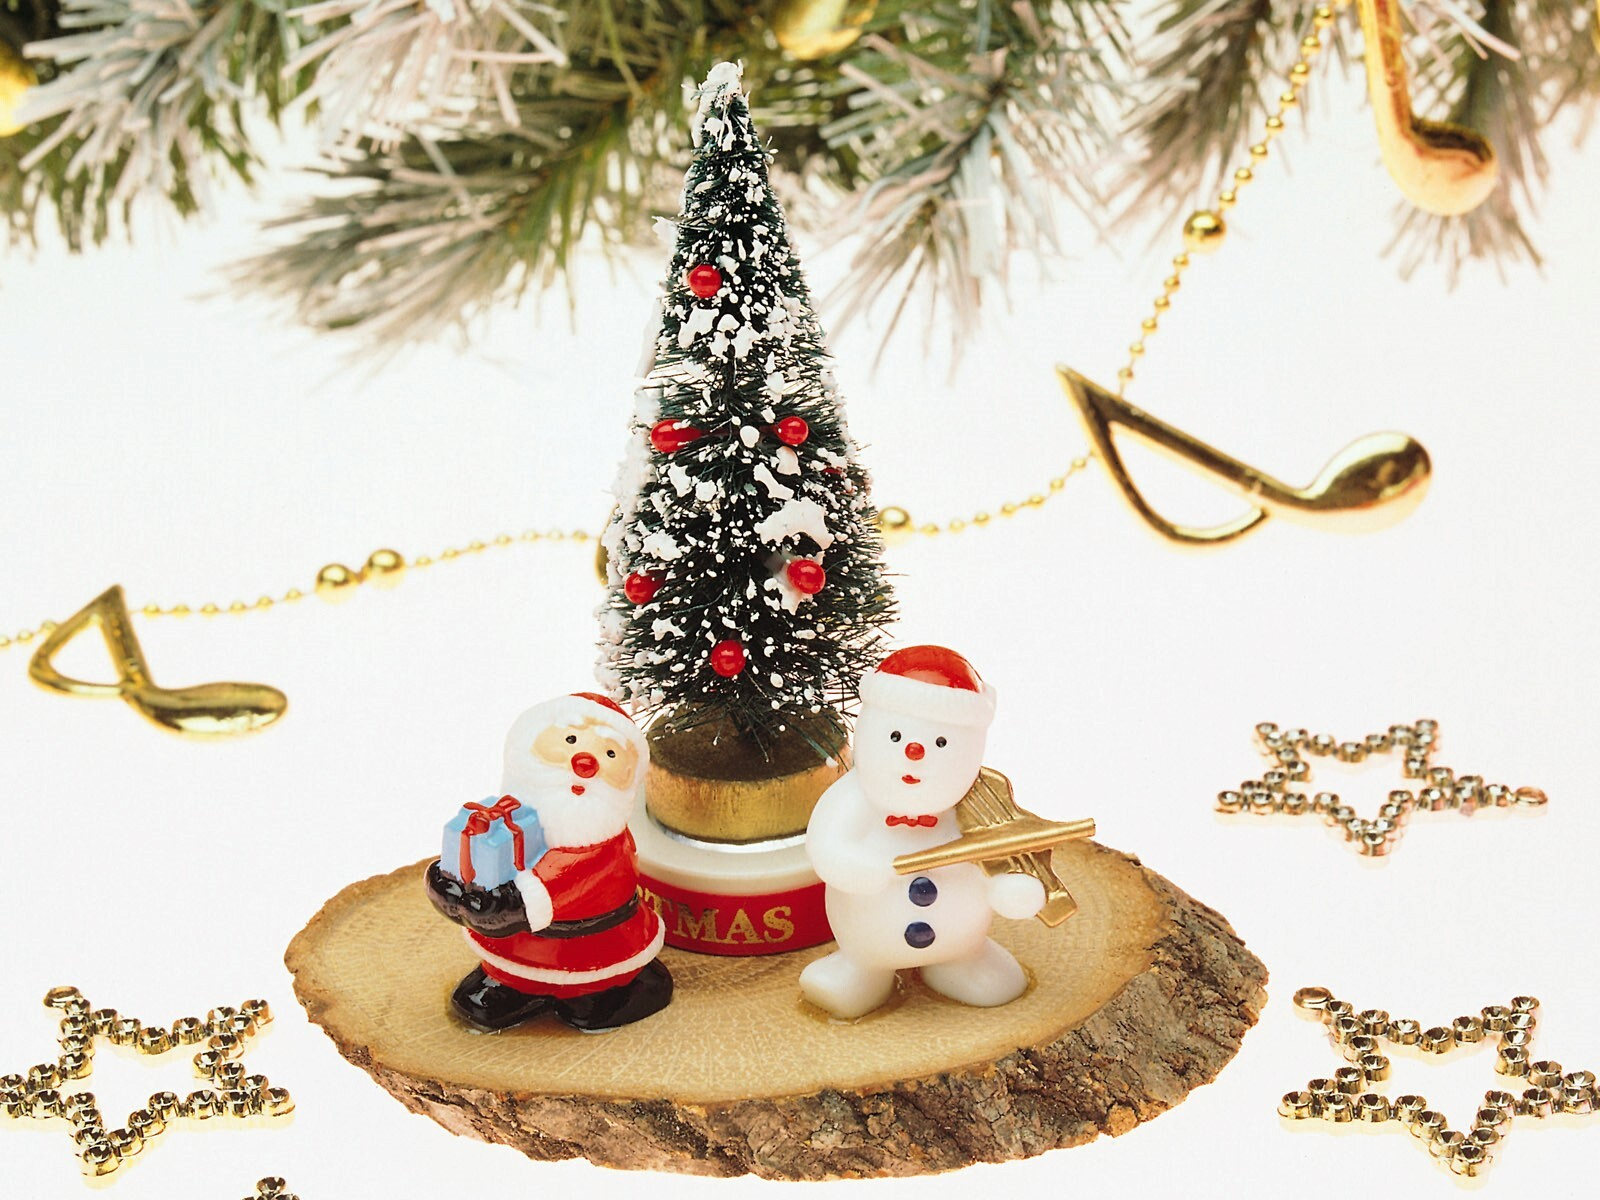 Beautiful Nice Christmas Tree and Santa Clause Gift Wallpaper | HD ...